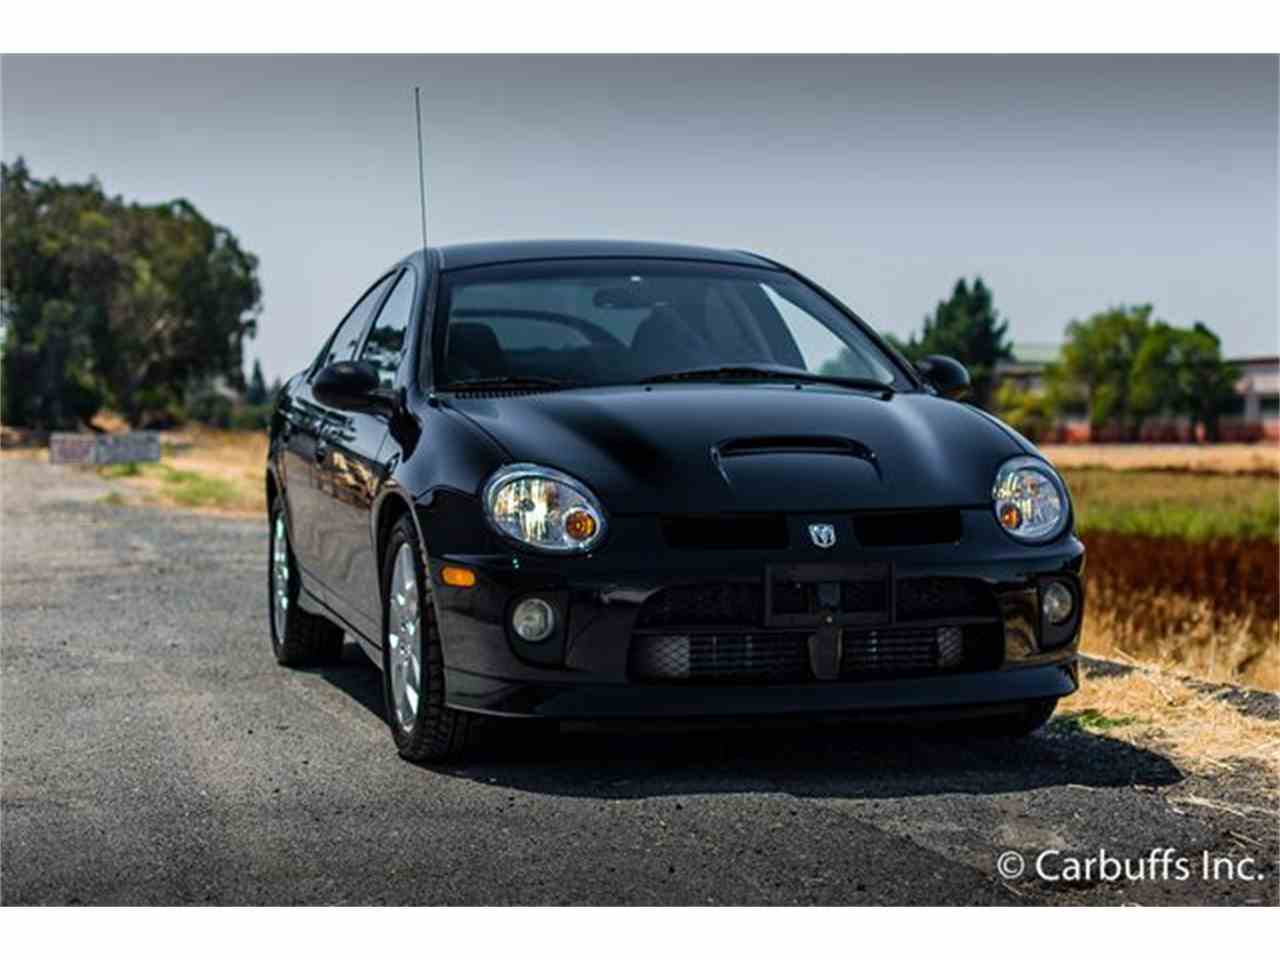 Large Picture of 2003 Dodge Neon located in Concord California - $7,500.00 - LSQC